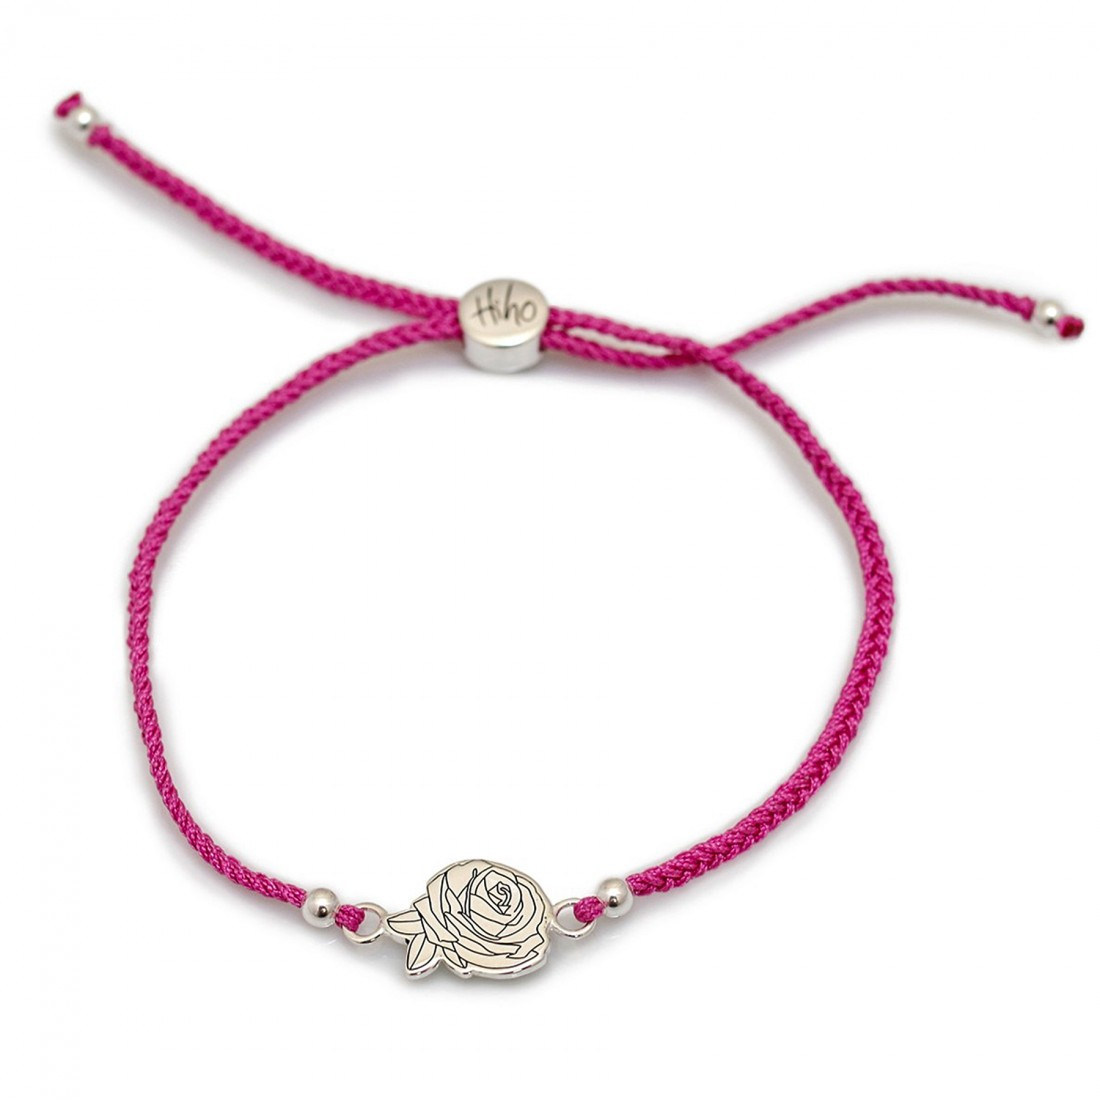 Exclusive Jemima Layzell Trust, Sterling Silver Rose Friendship bracelet